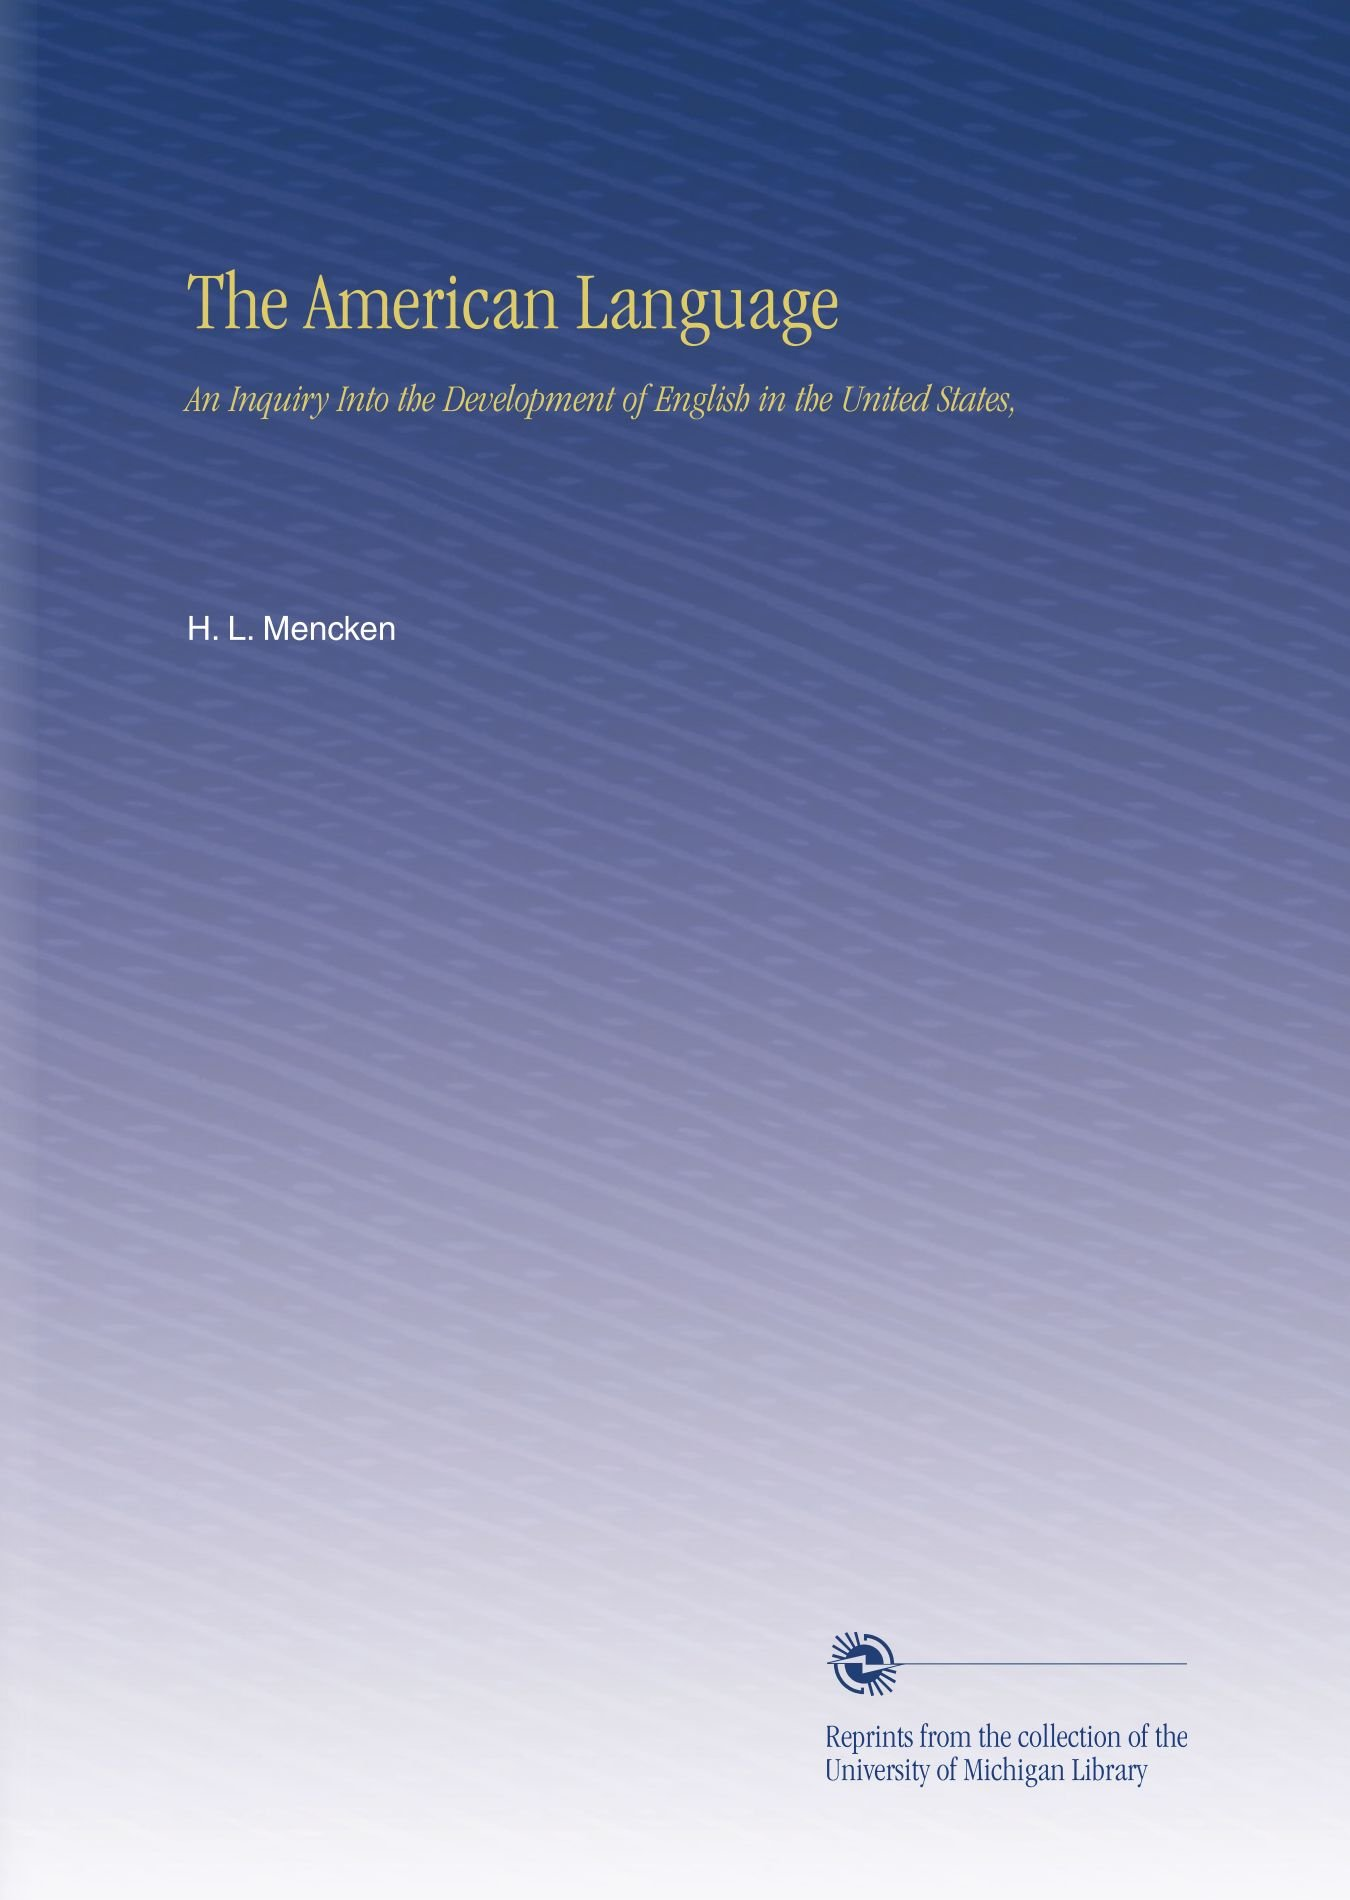 The American Language: An Inquiry Into the Development of English in the United States, pdf